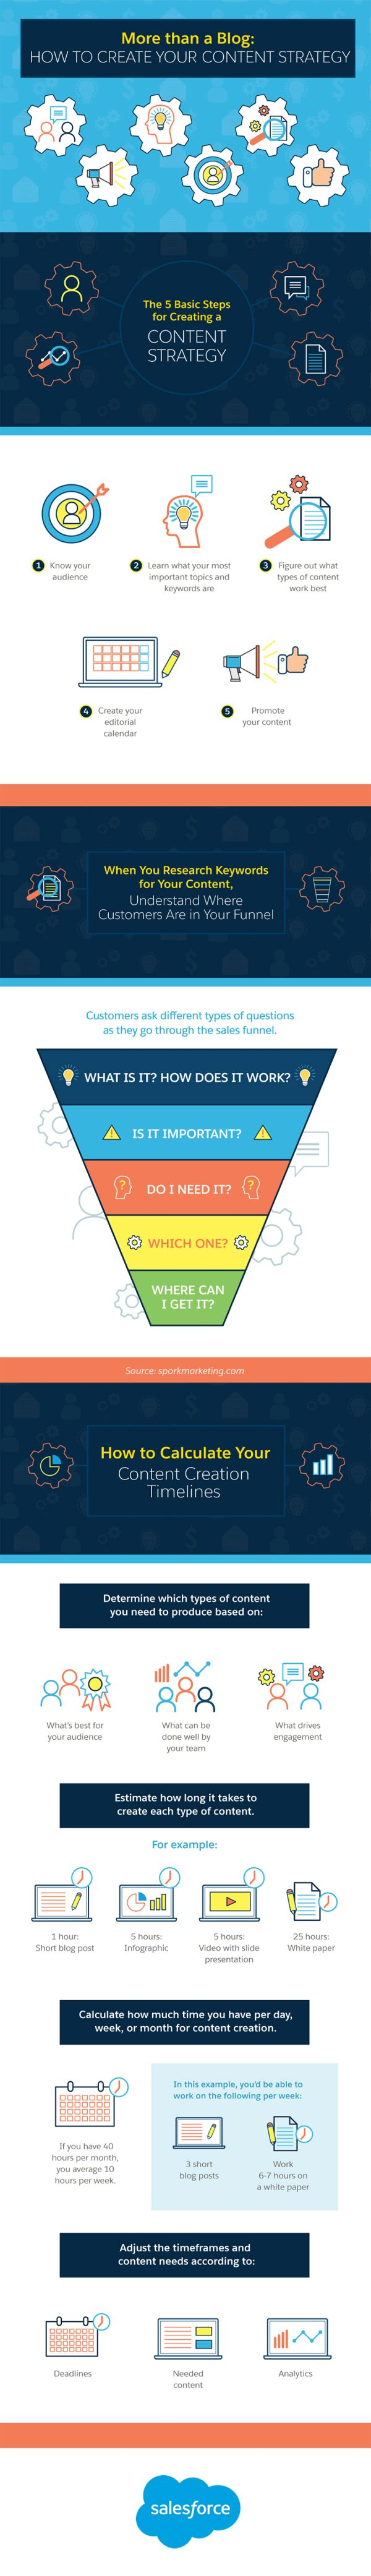 Infographic: Creating A Content Strategy